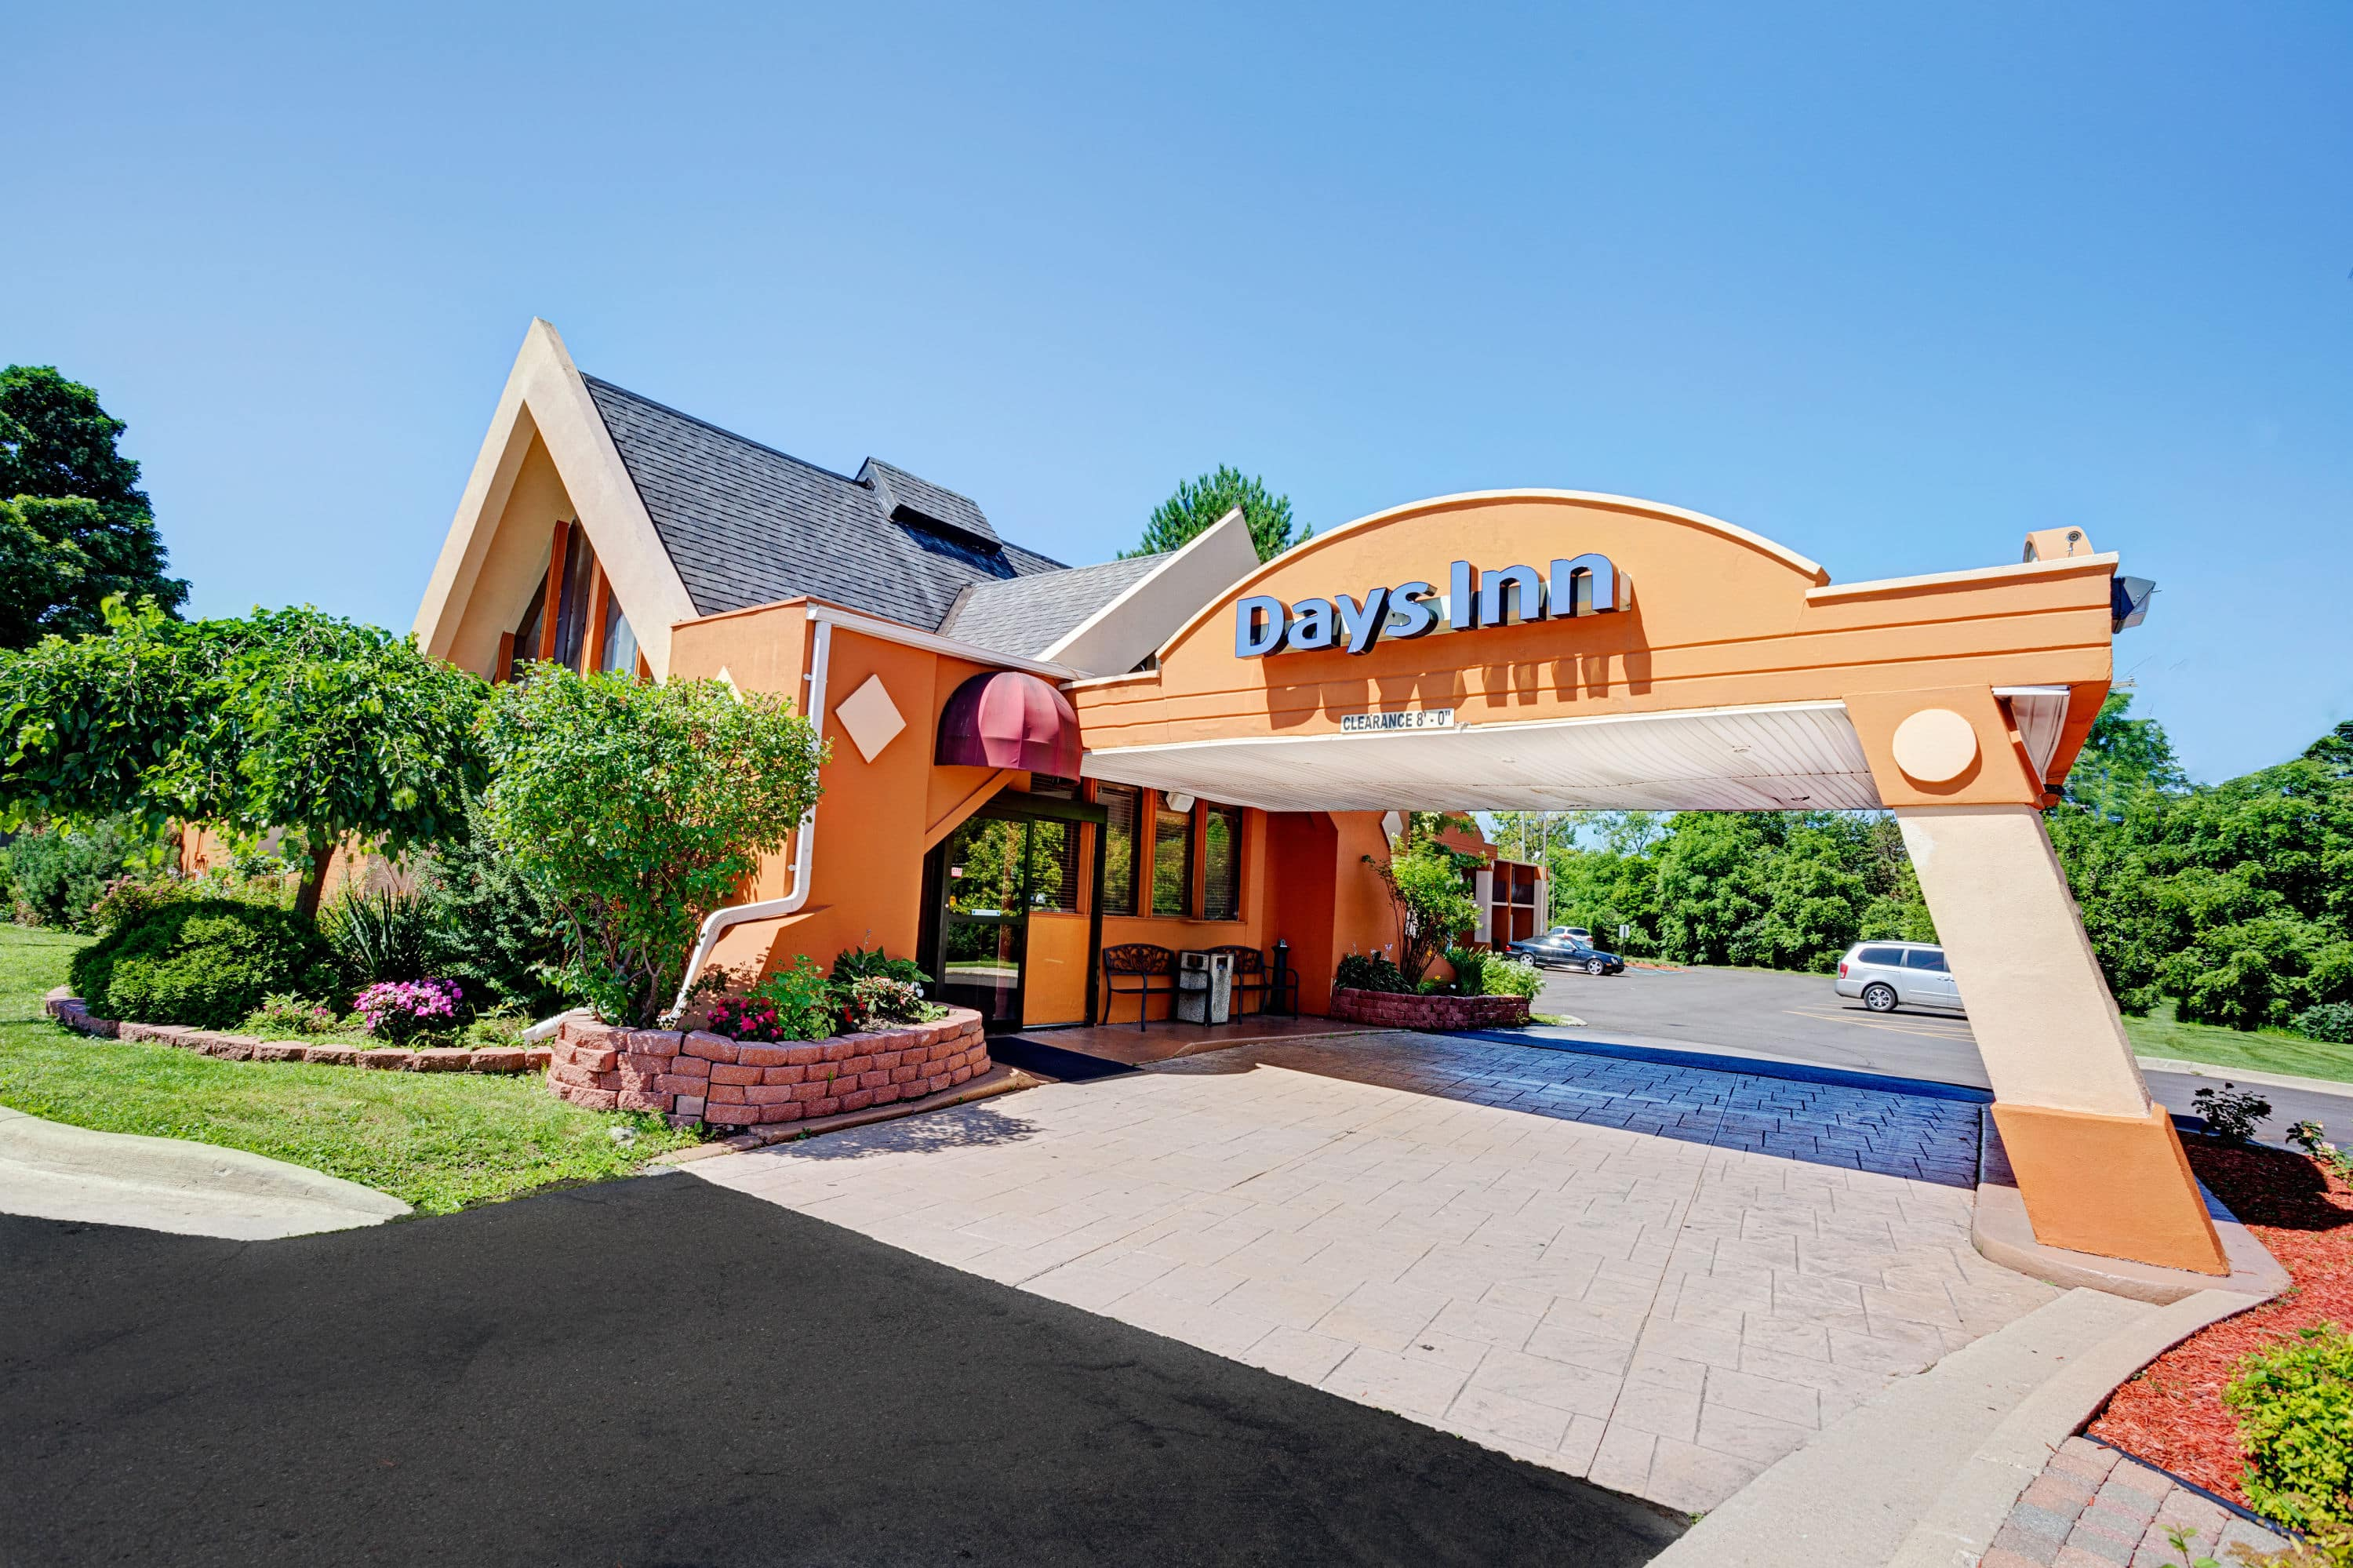 Latest Exterior Of Days Inn Ann Arbor Hotel In Michigan With Hotels Near Chelsea Mi